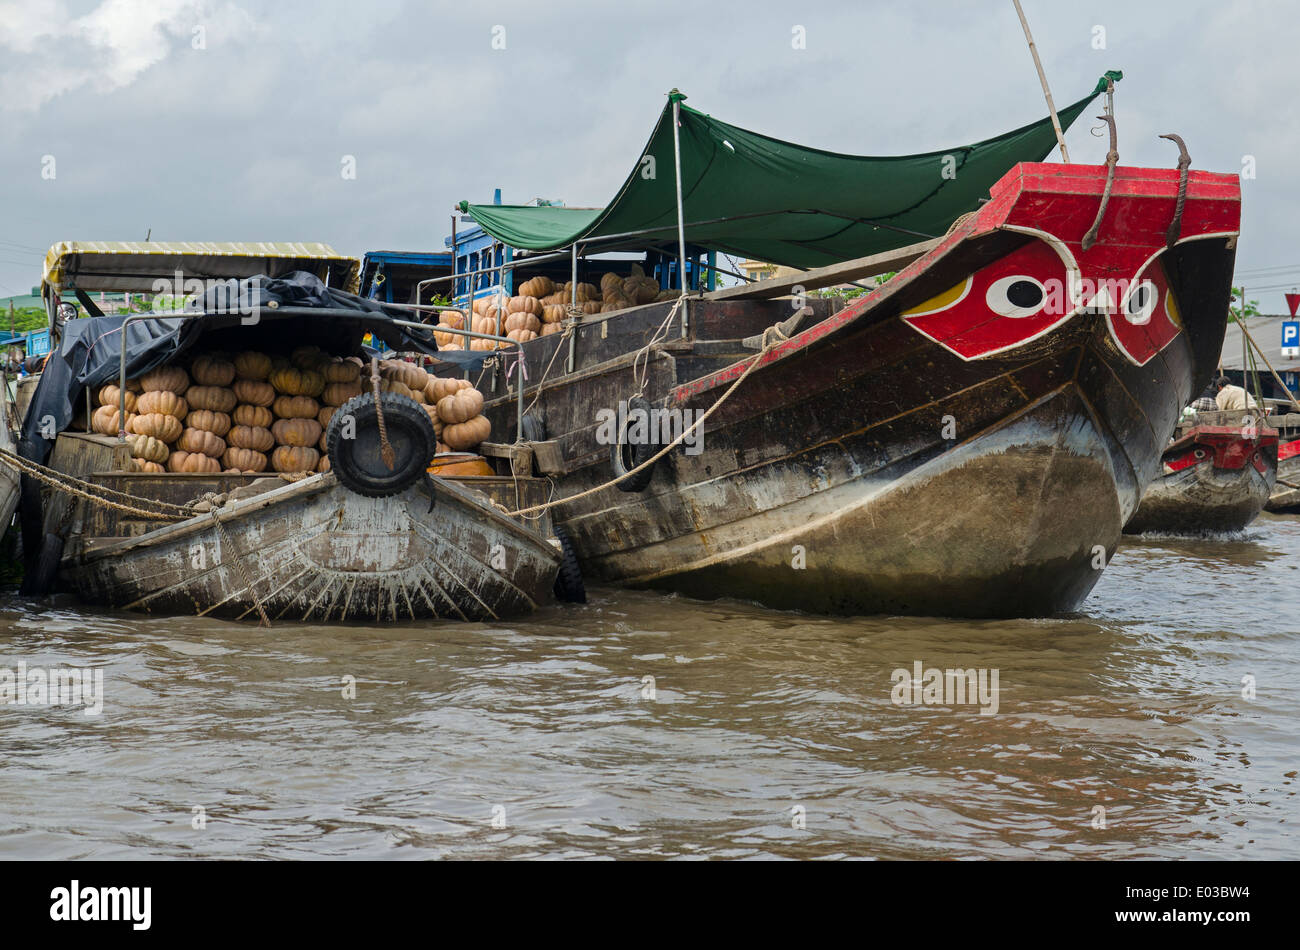 Boats selling vegetables, Can Rang floating market, Can Tho, Vietnam - Stock Image